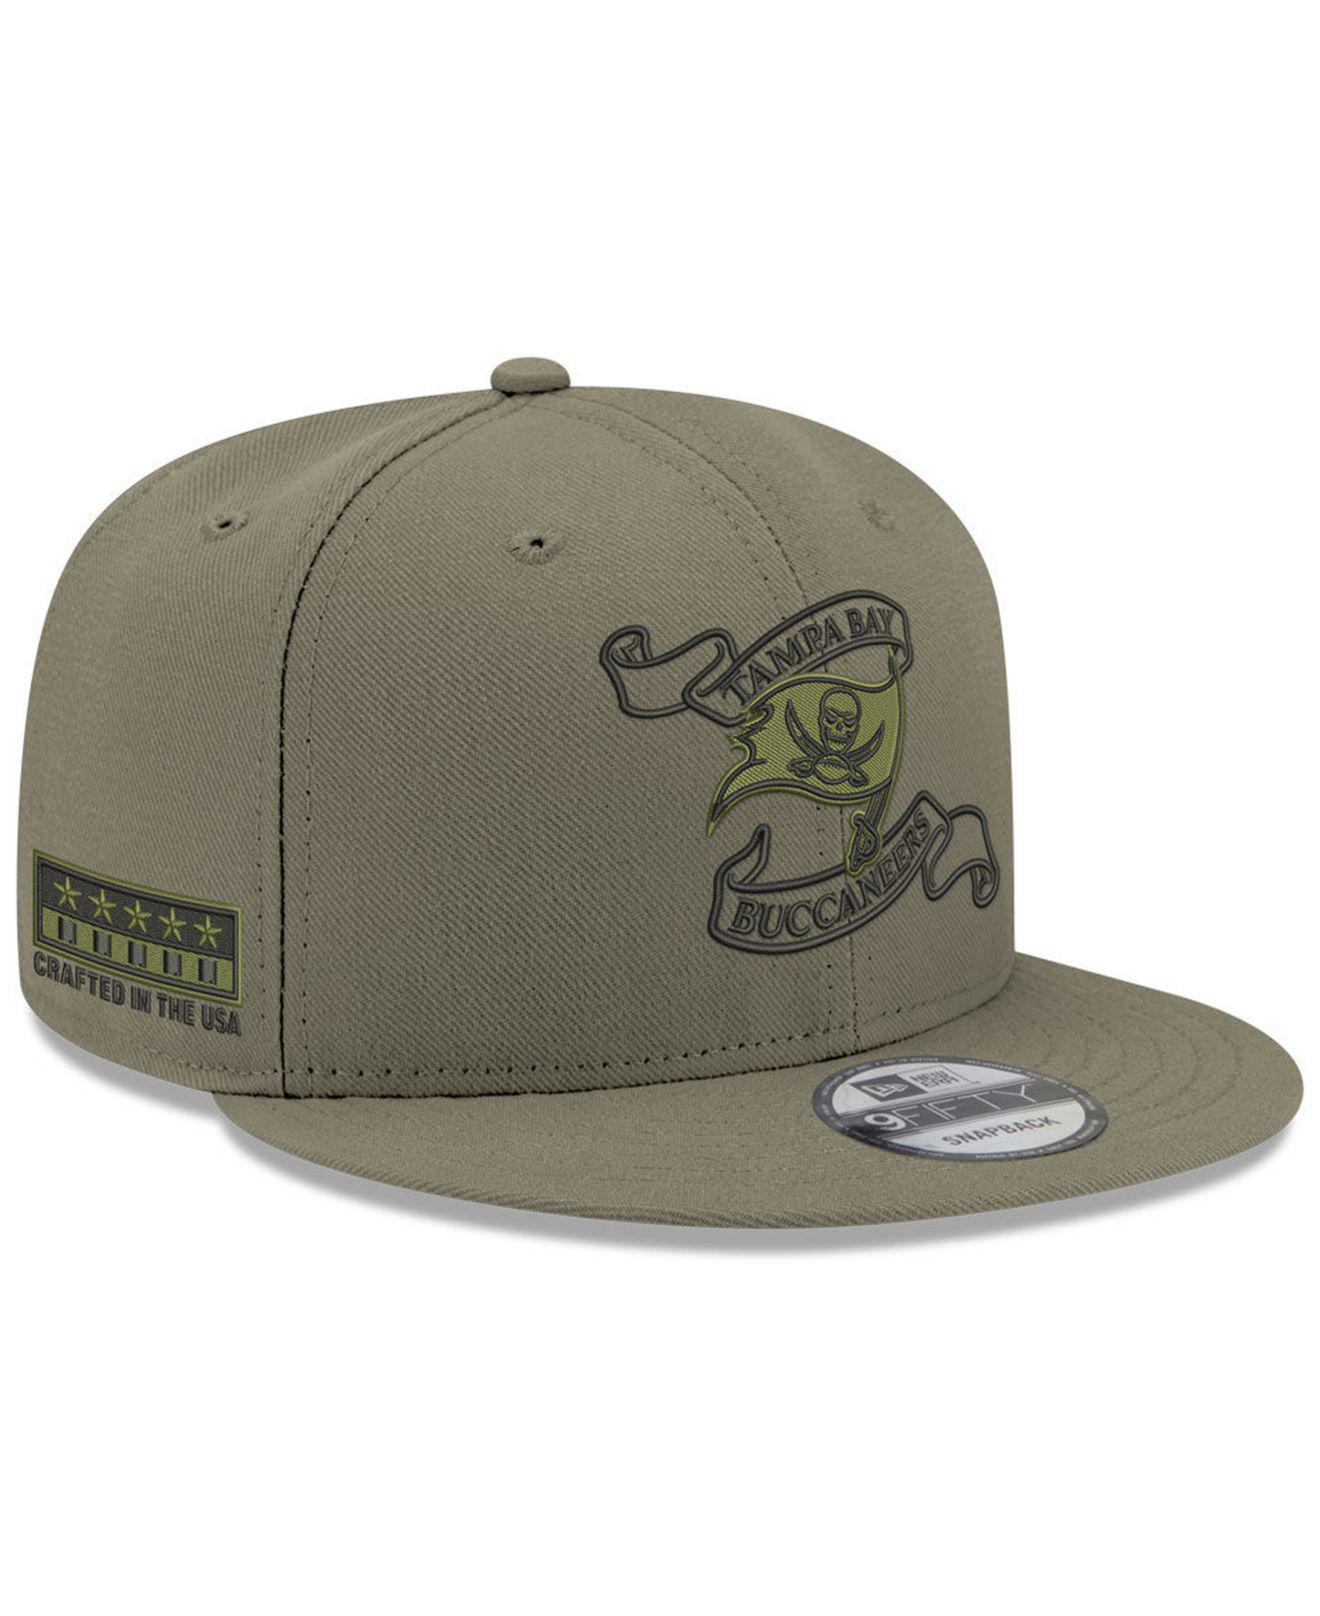 e3f66e6d9 KTZ. Men s Green Tampa Bay Buccaneers Crafted In The Usa 9fifty Snapback Cap